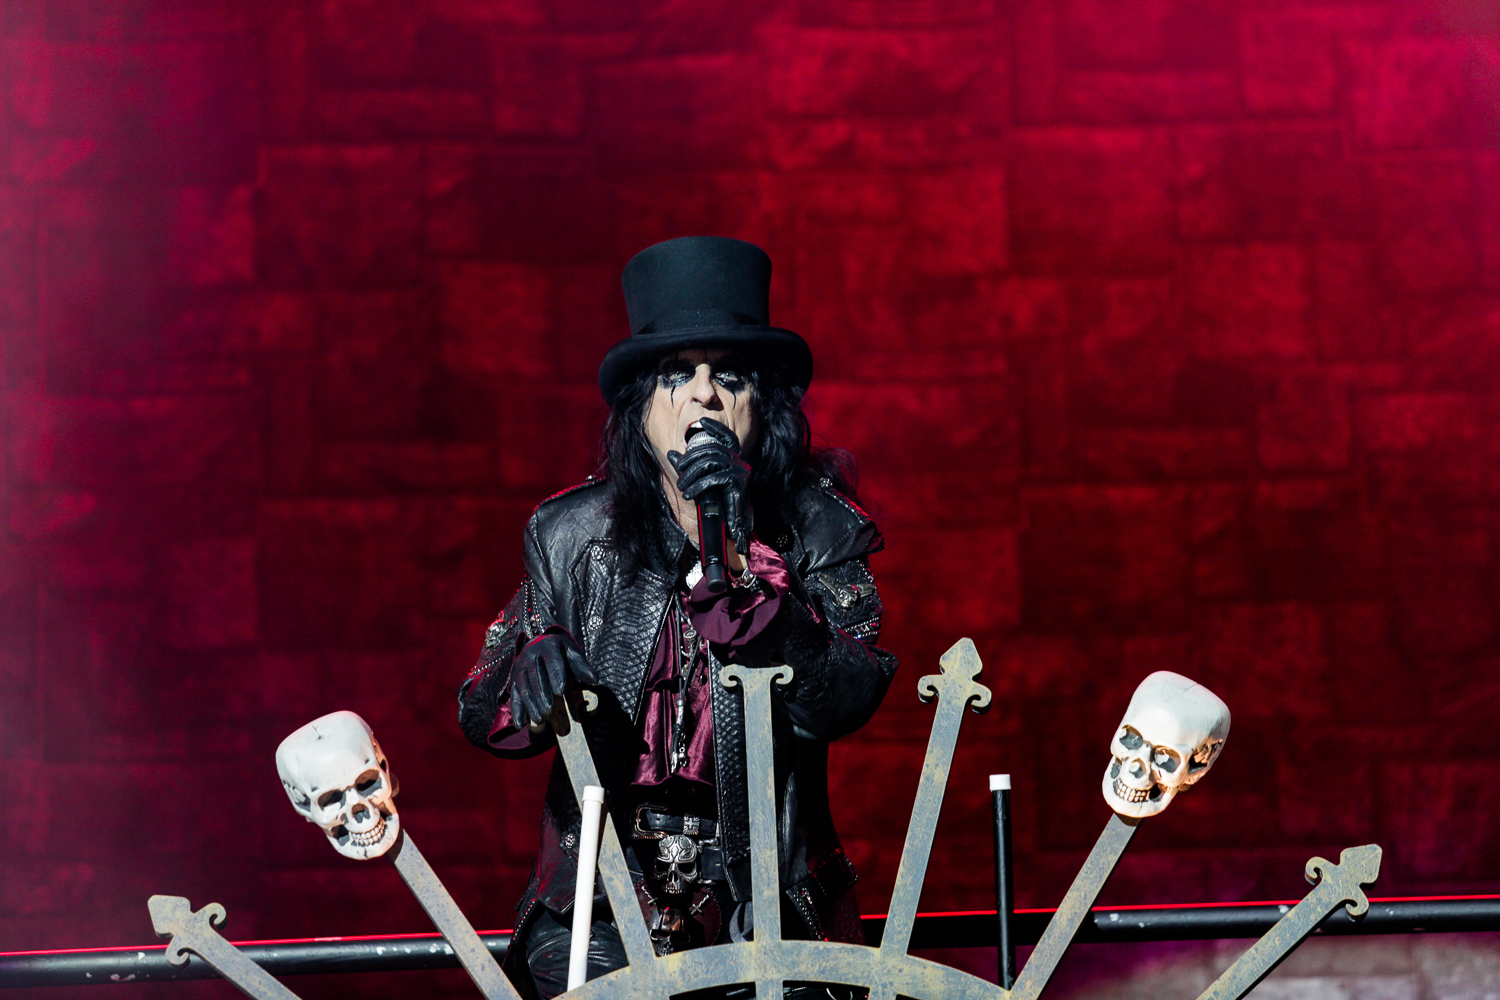 Live Review: Alice Cooper at The O2, London, 10/10/2019